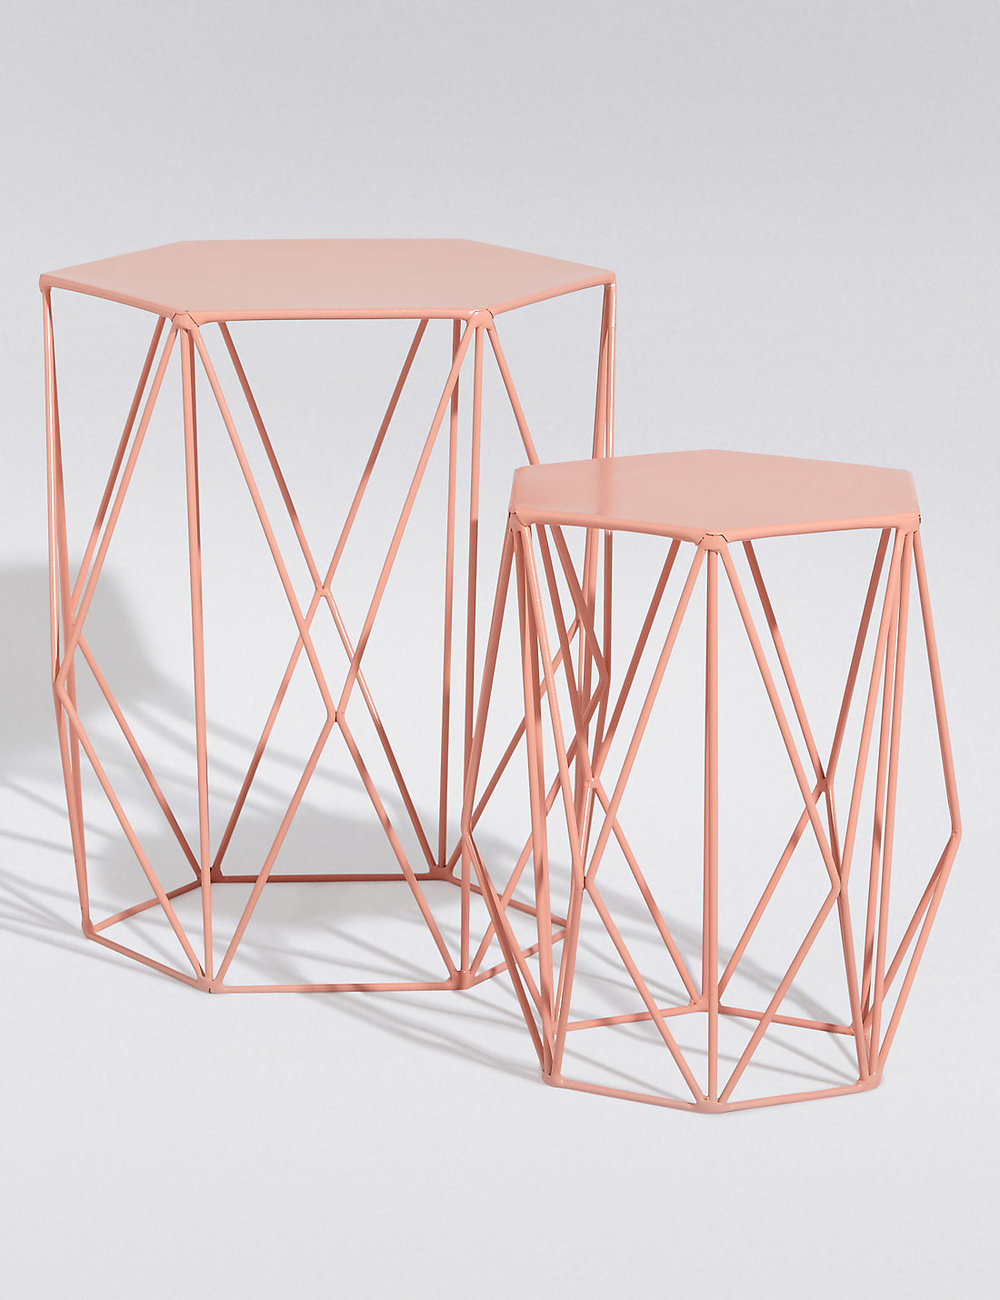 Coral nest of tables £79 currently out of stock* insert cry face emoji here.